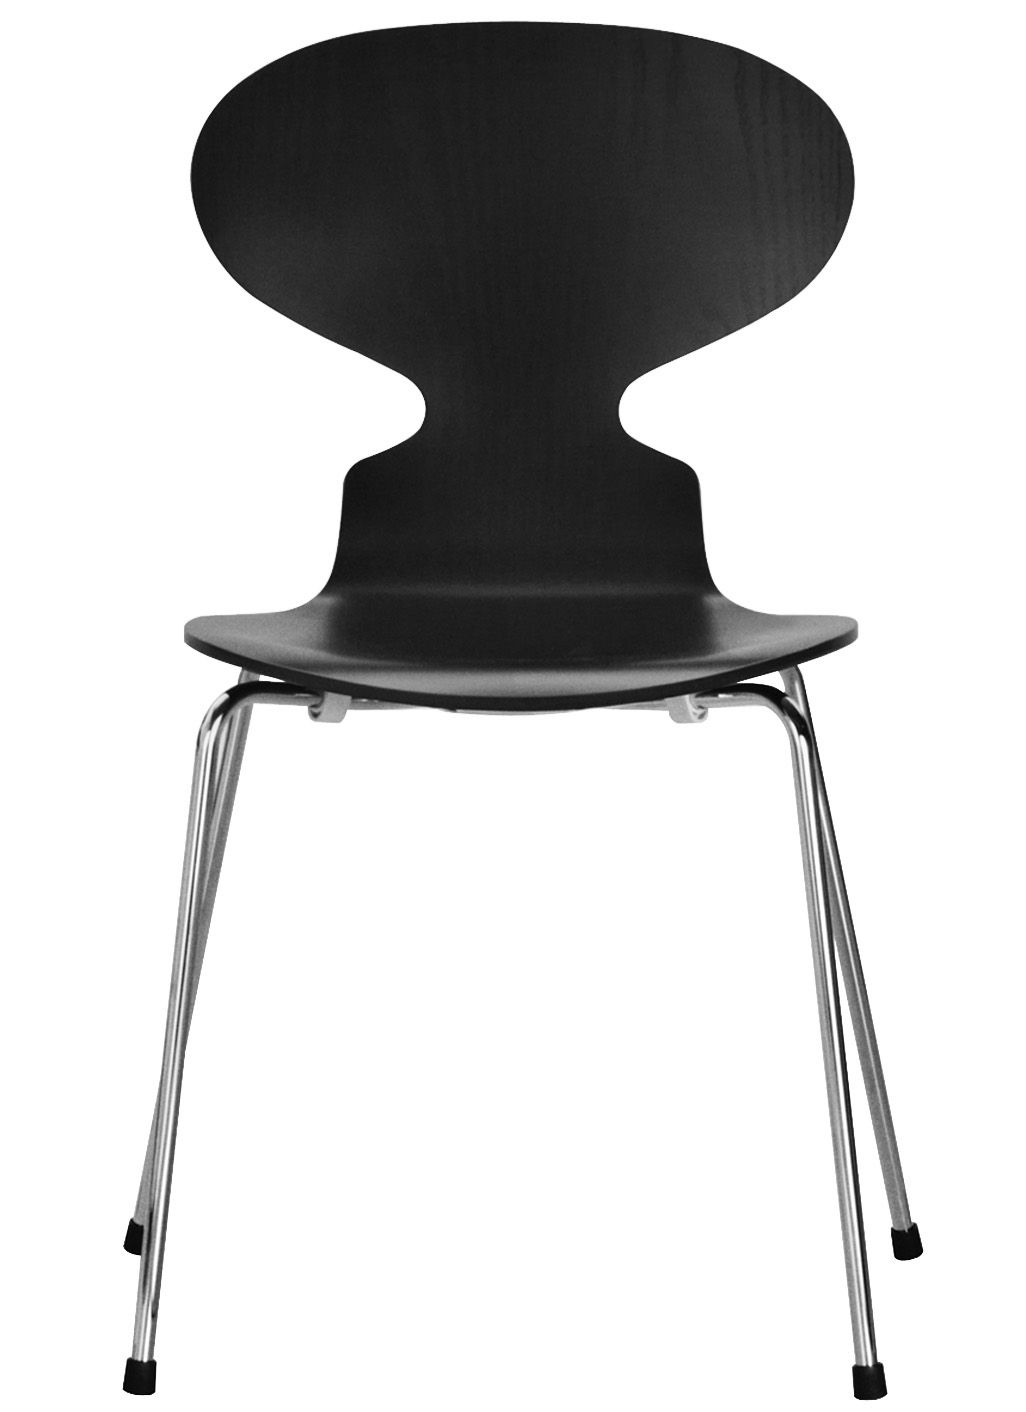 Furniture - Chairs - Fourmi Stacking chair by Fritz Hansen - Black - Plywood: tinted ash, Steel